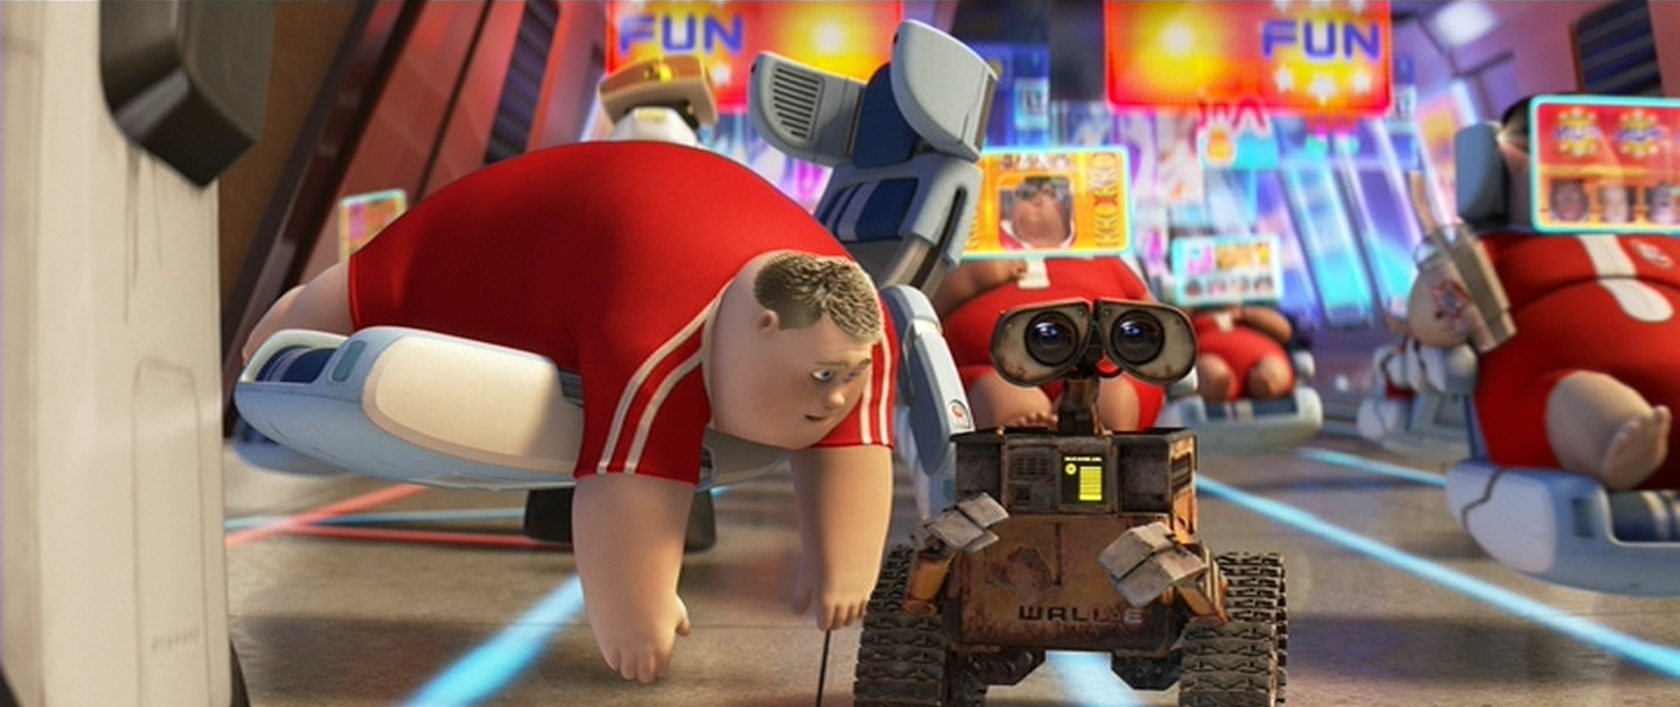 the importance of characterization in wall e an american science fiction film by andrew stanton John carter is a 2012 american science fiction adventure film directed by andrew stanton it is based on a princess of mars, the first book in the barsoom series of novels by edgar rice burroughs.